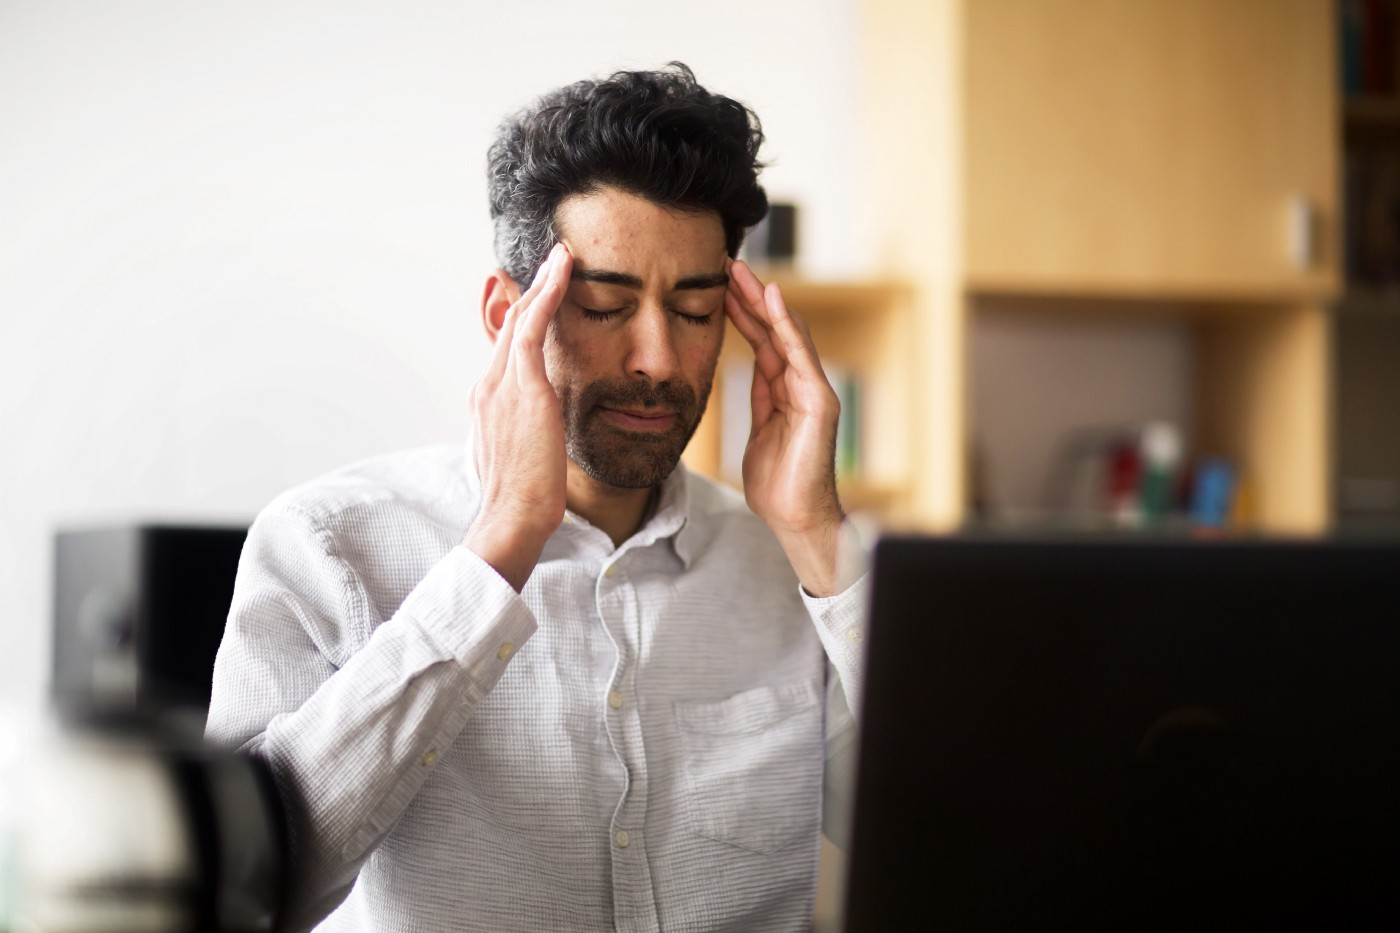 A man closes his eyes and massages his temples to relieve stress in front of his laptop.